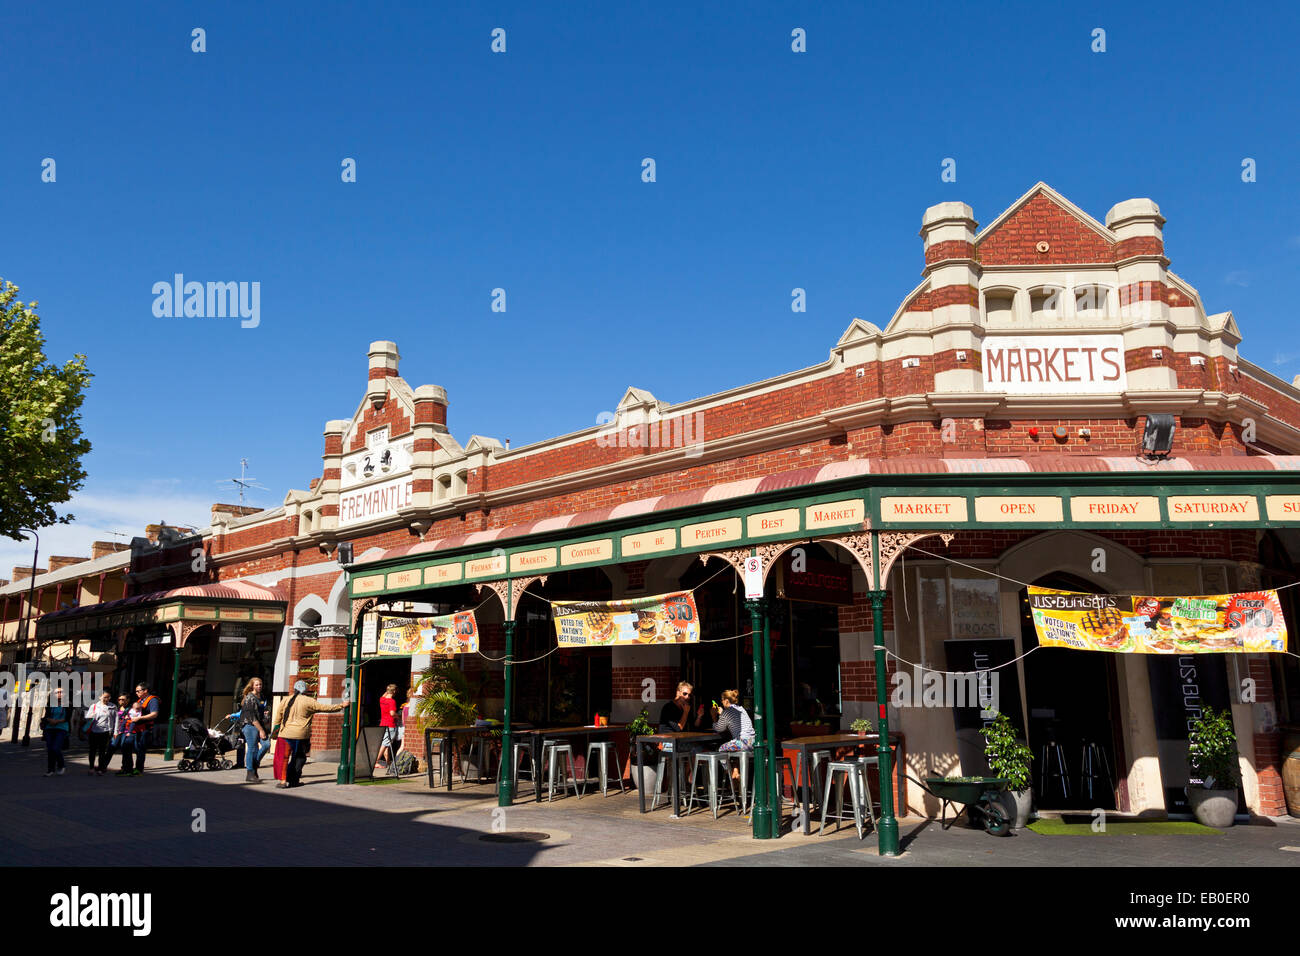 The Market in Fremantle Perth Australia - Stock Image